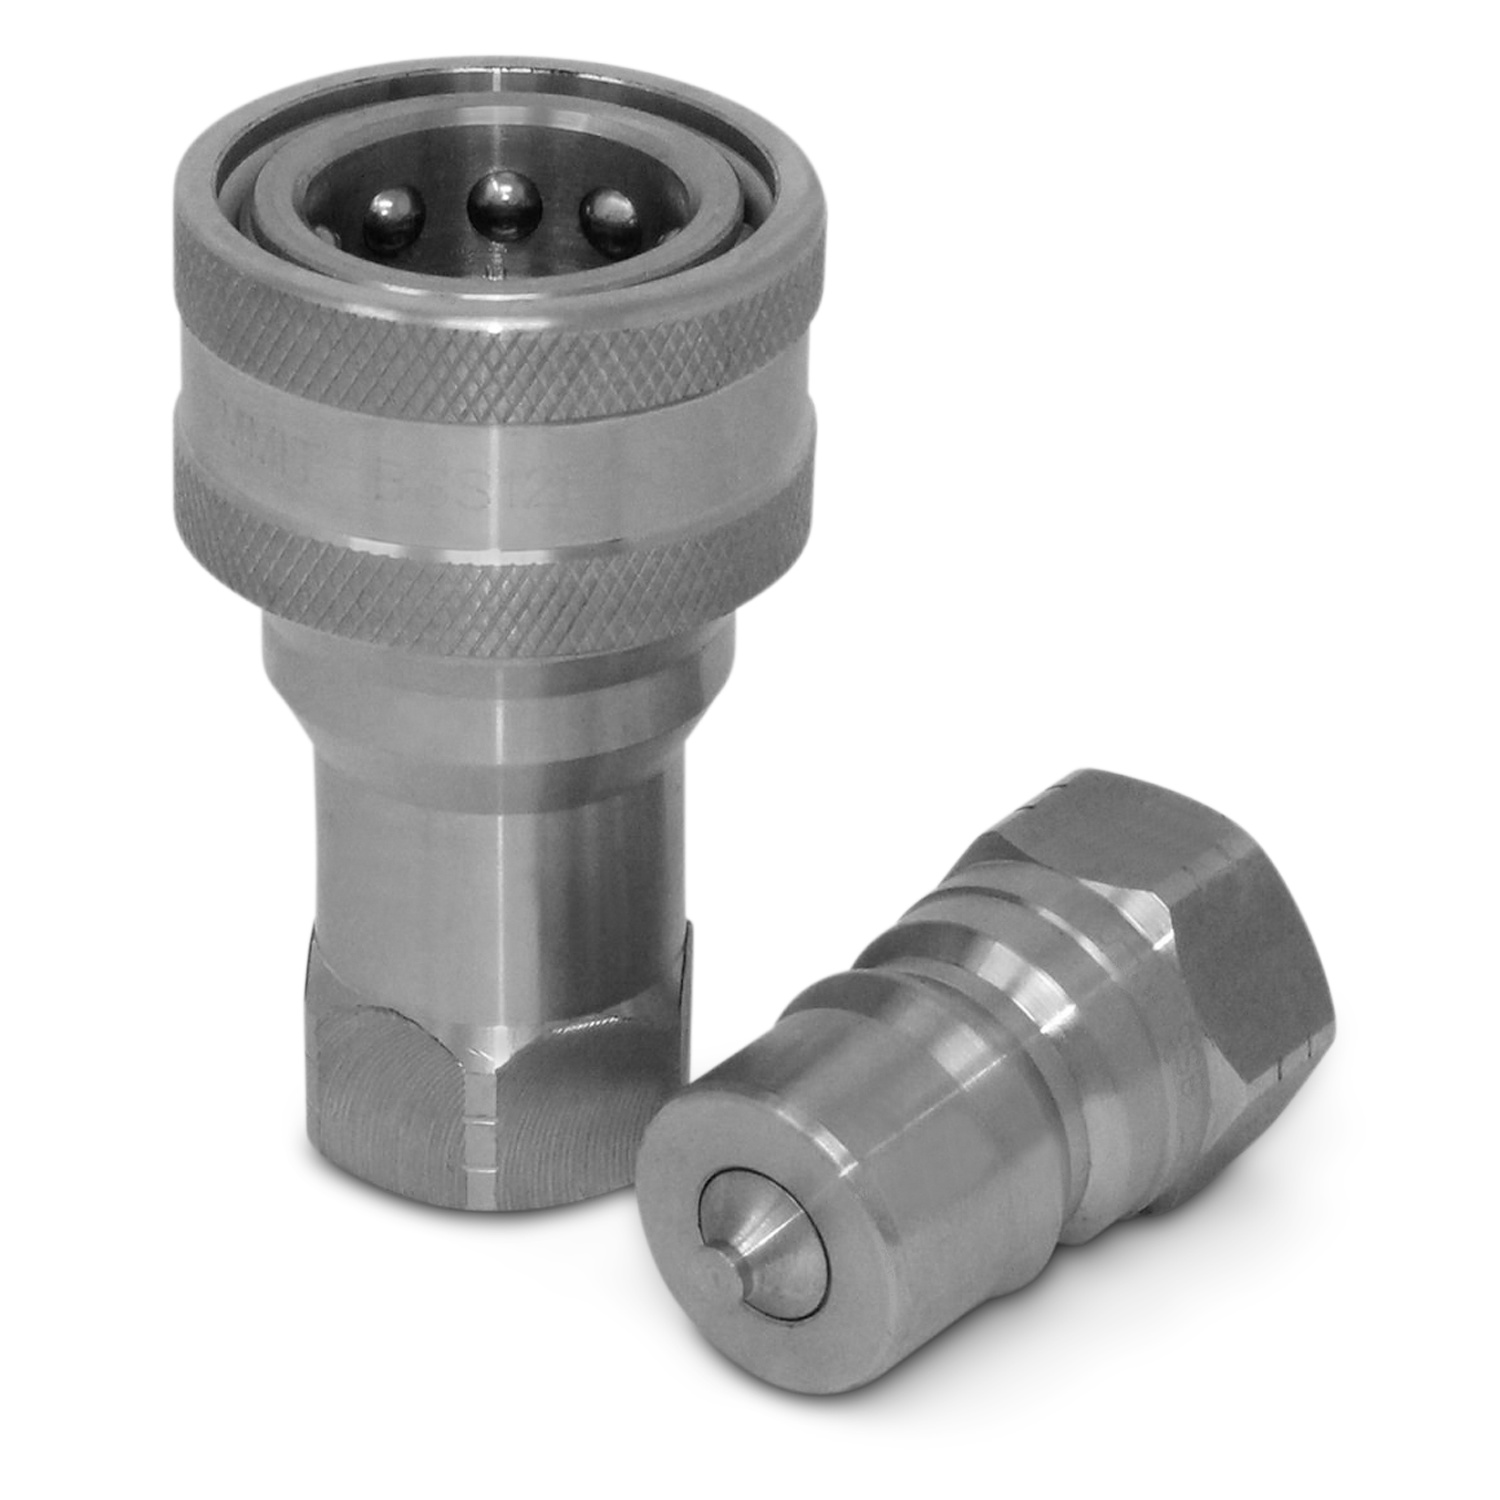 Quot npt iso b stainless steel quick disconnect